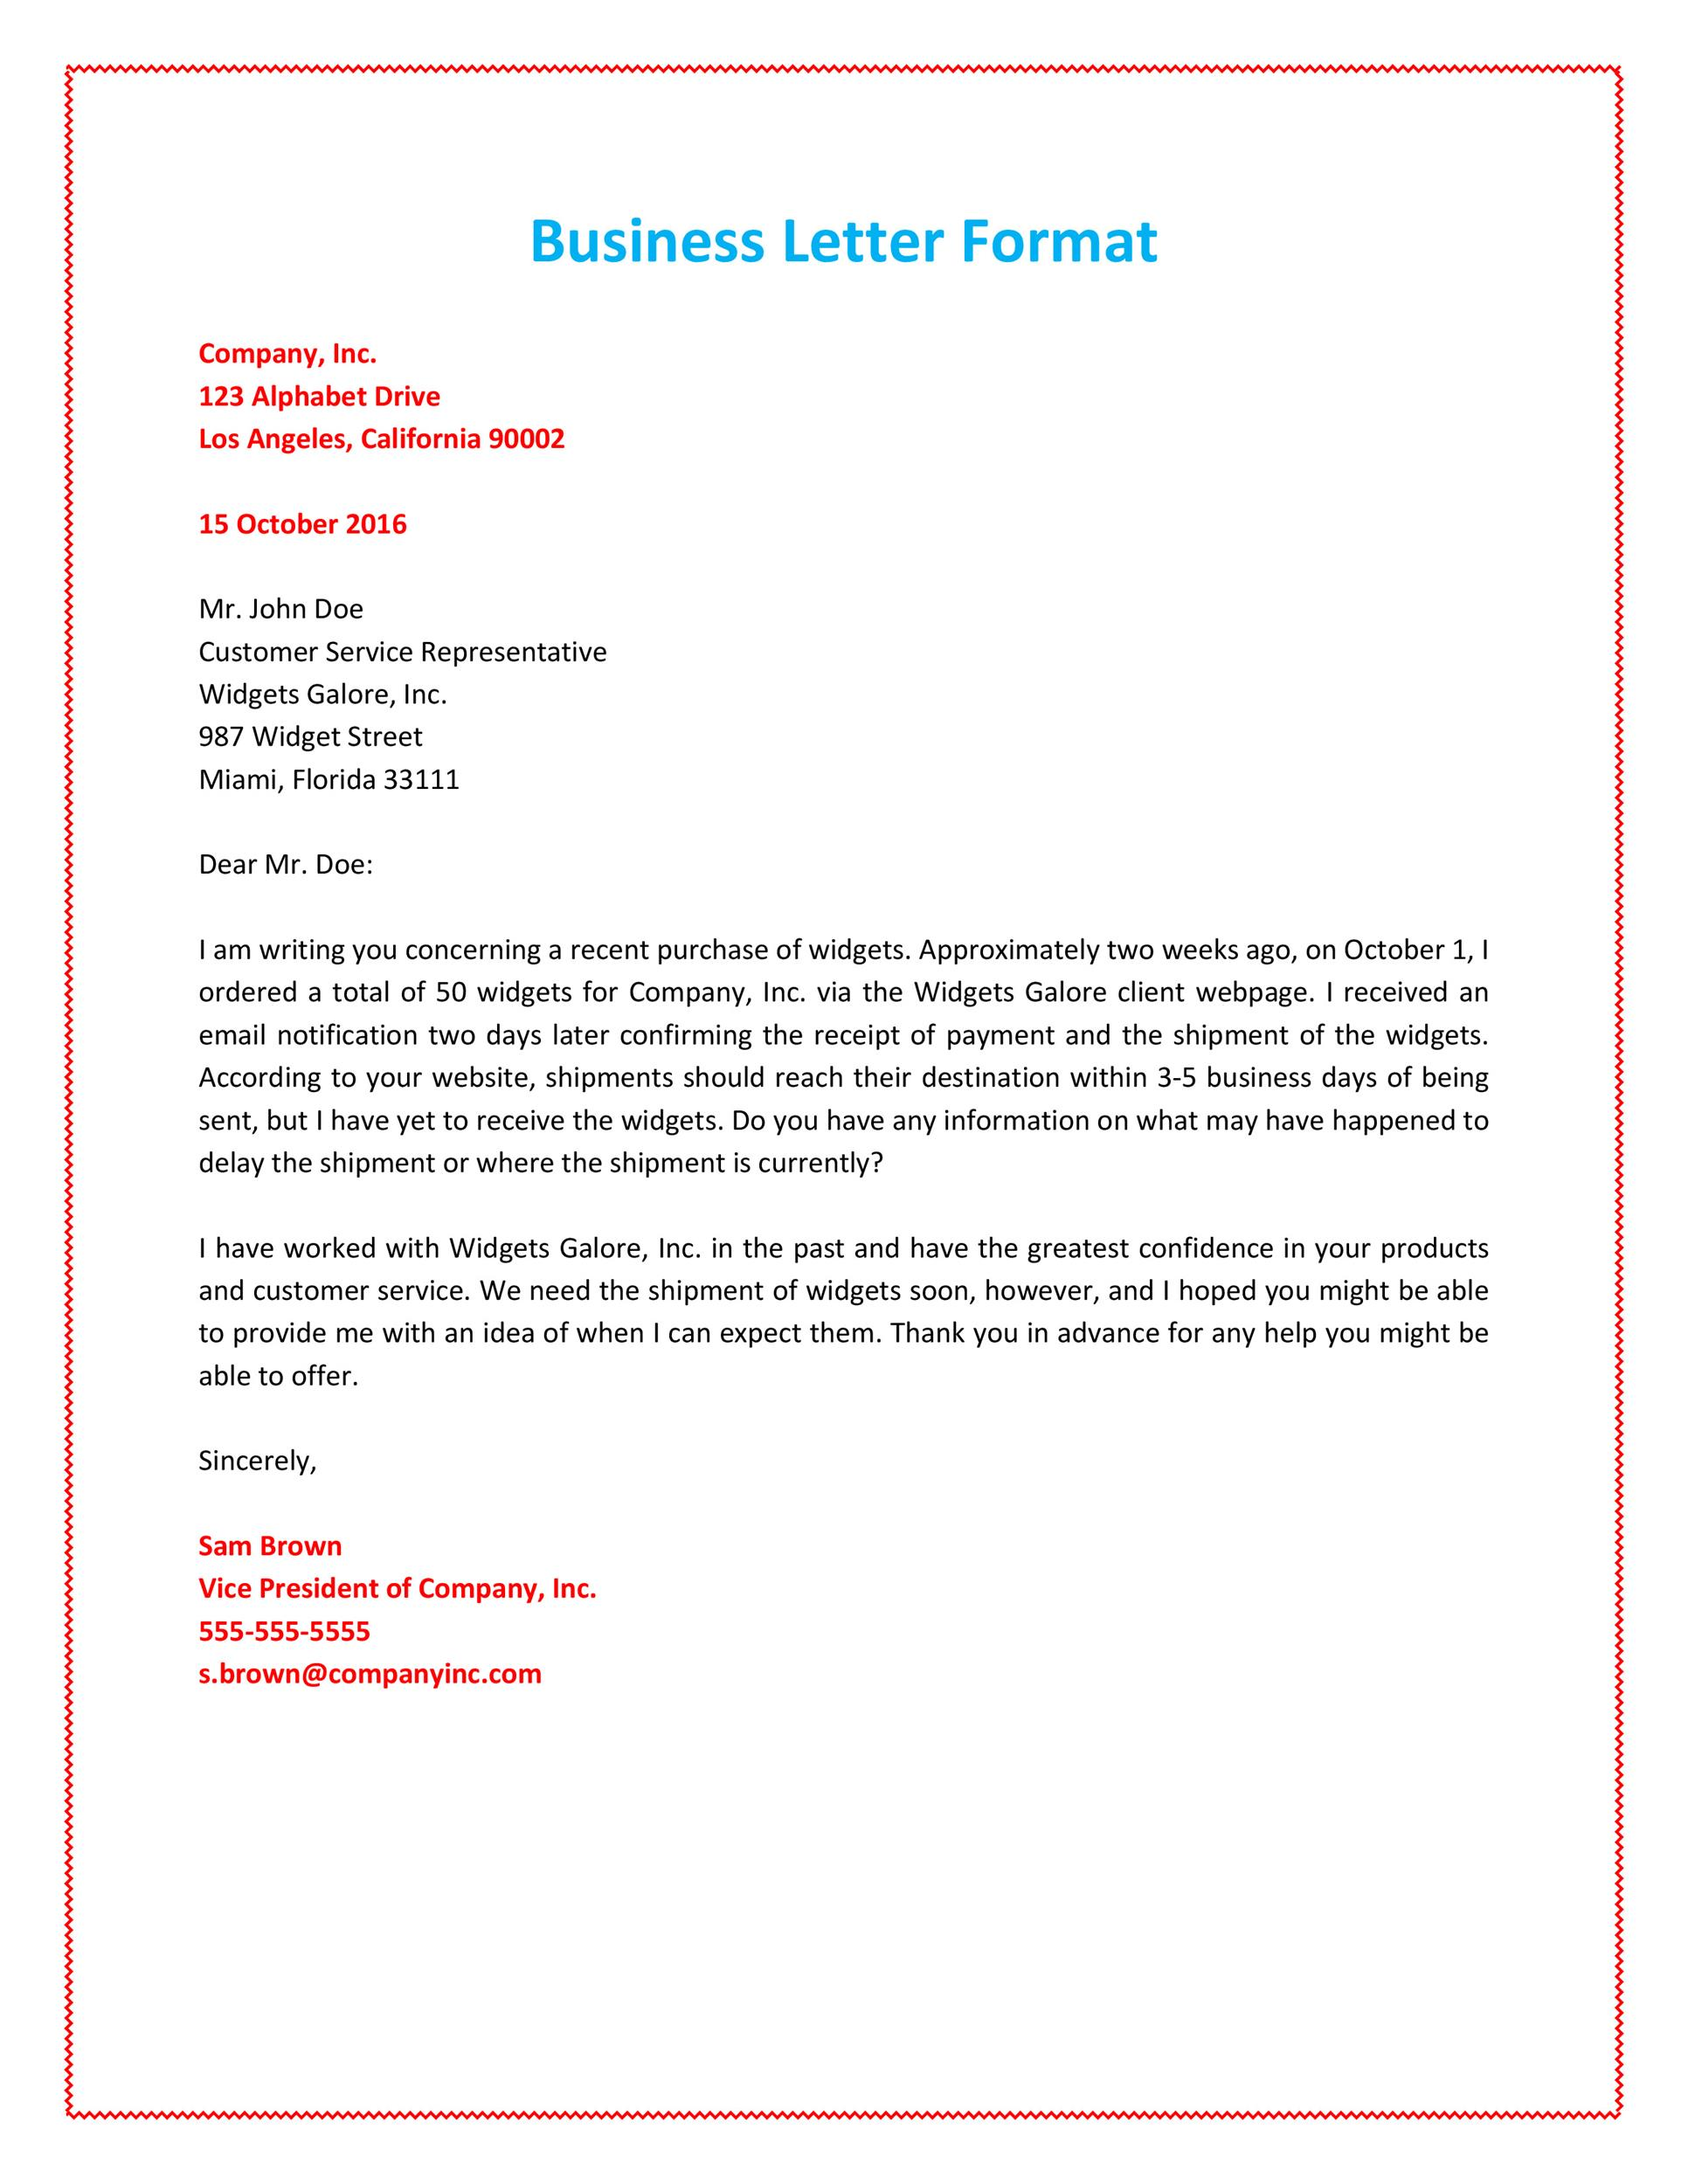 formal-business-letter-01.jpg